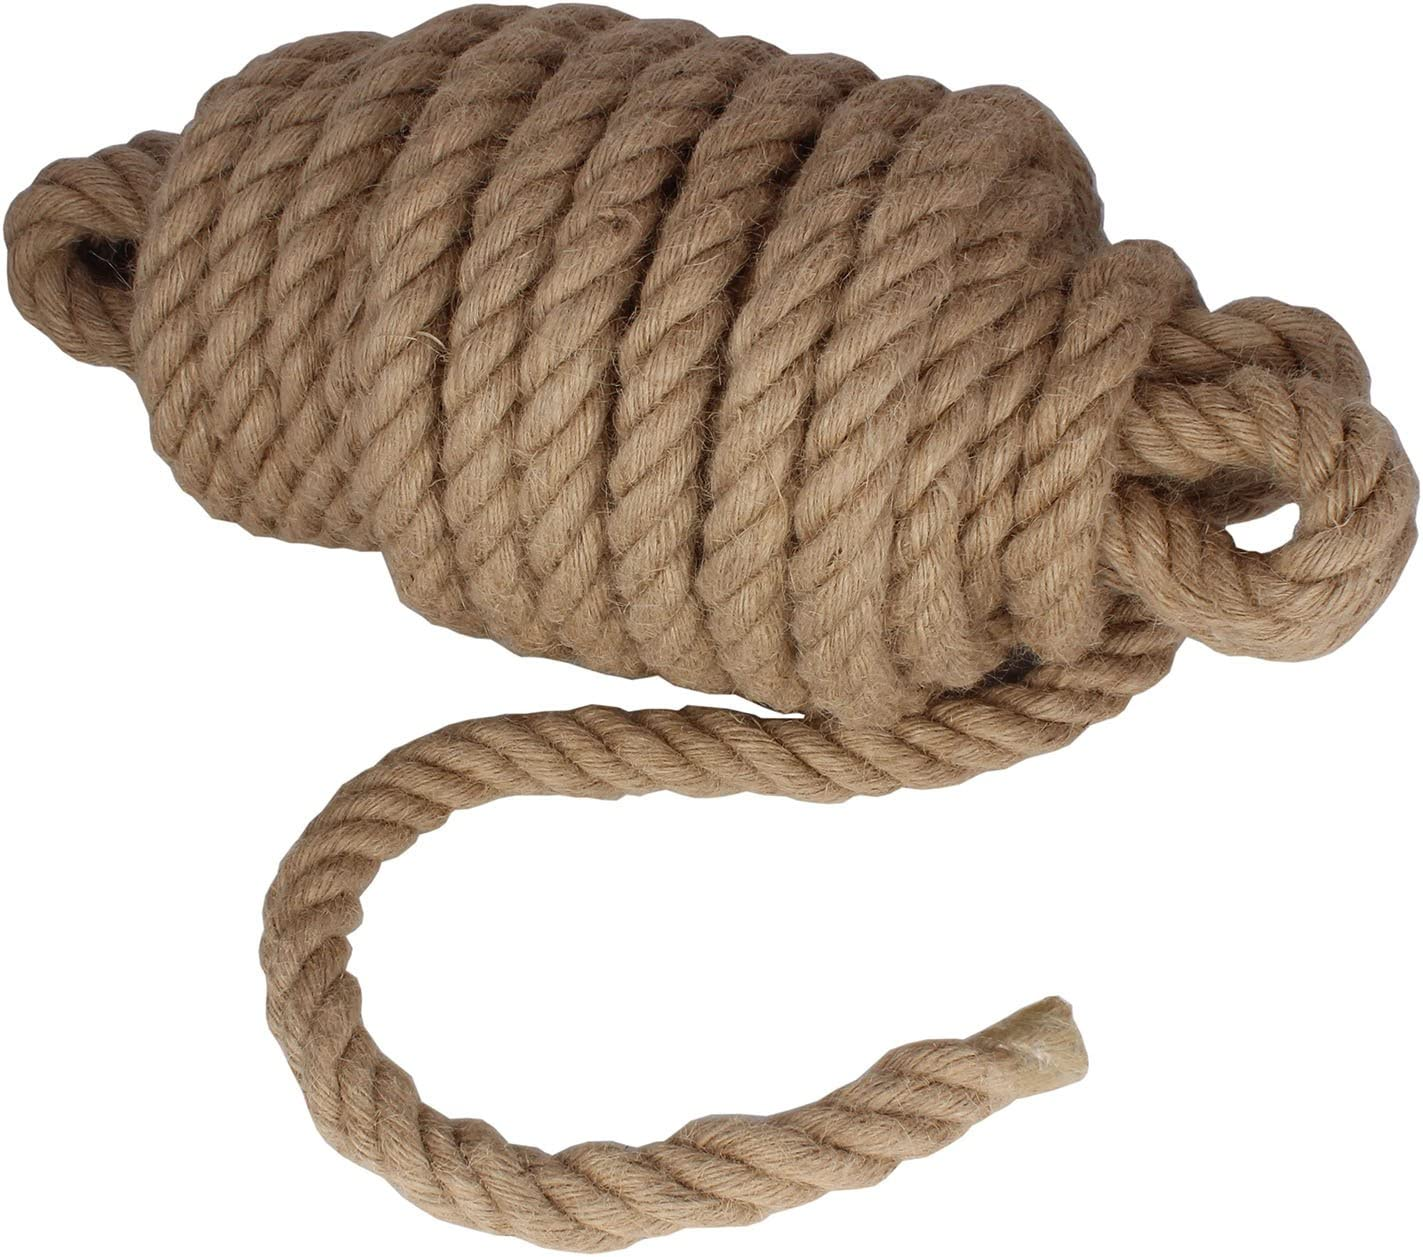 Twisted Manila Rope Jute Rope 50 Feet Natural Jute Twine Hemp Rope 1 Inch Diameter Twine Burlap Rope